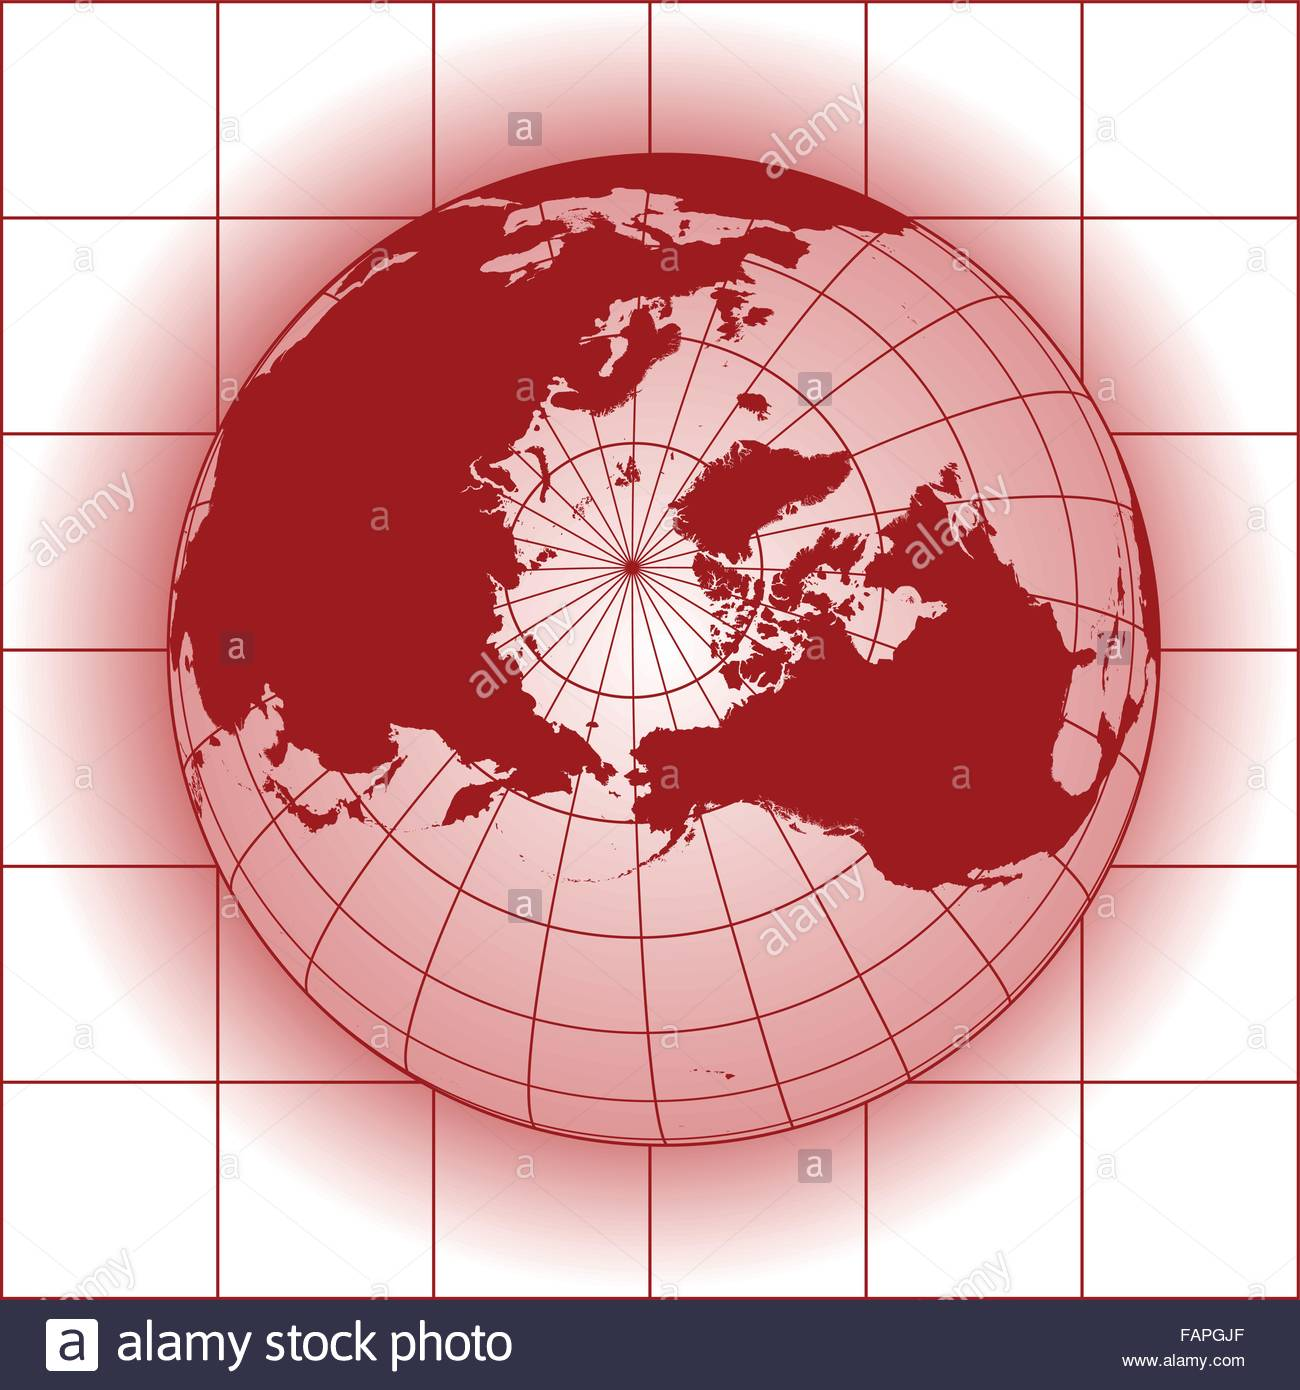 North pole map europe greenland asia america russia earth north pole map europe greenland asia america russia earth globe worldmap elements of this image furnished by nasa gumiabroncs Image collections